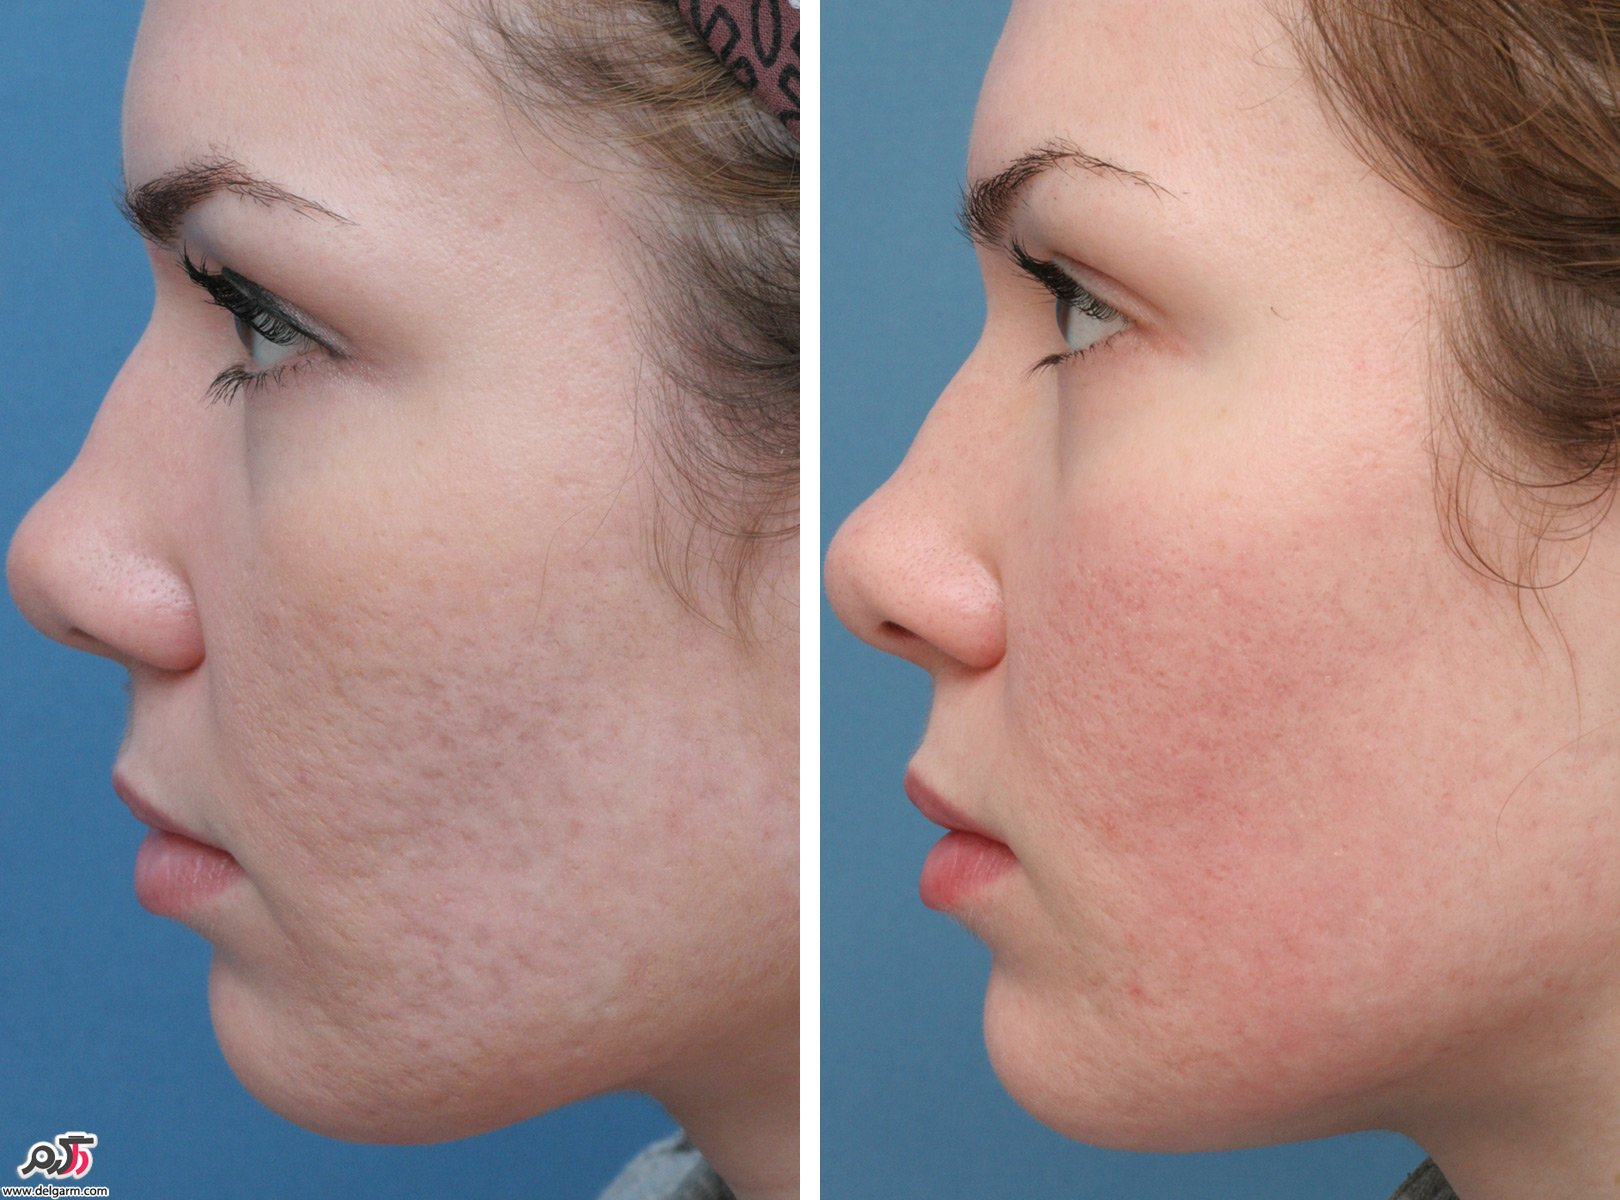 Treatment of acne scars